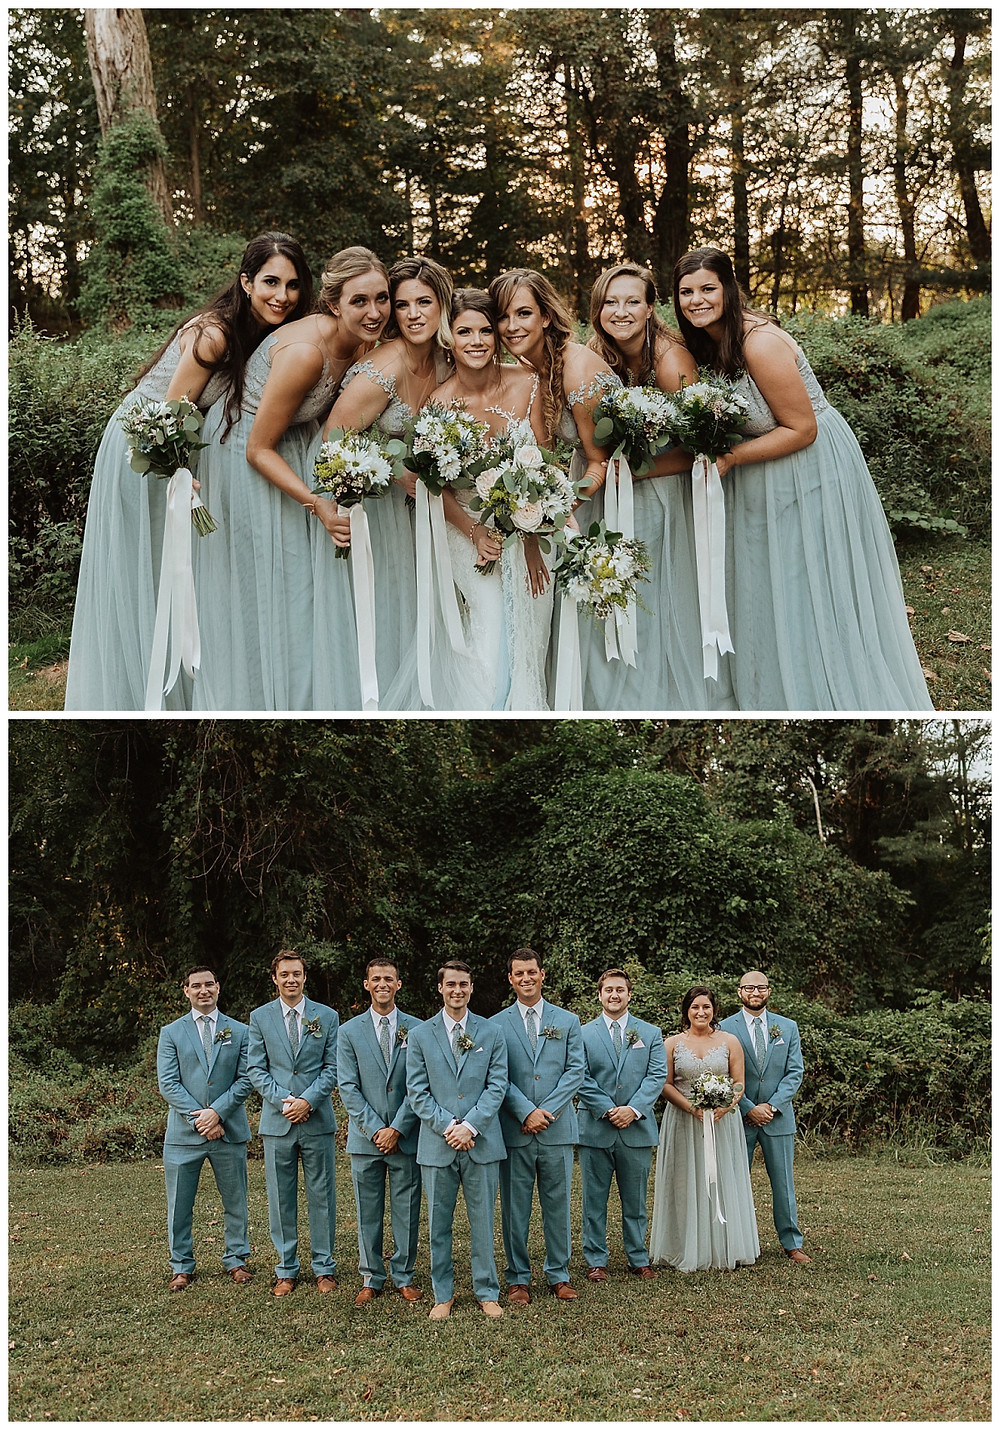 Light Blue Bridesmaid Dresses and Groomsman Attire